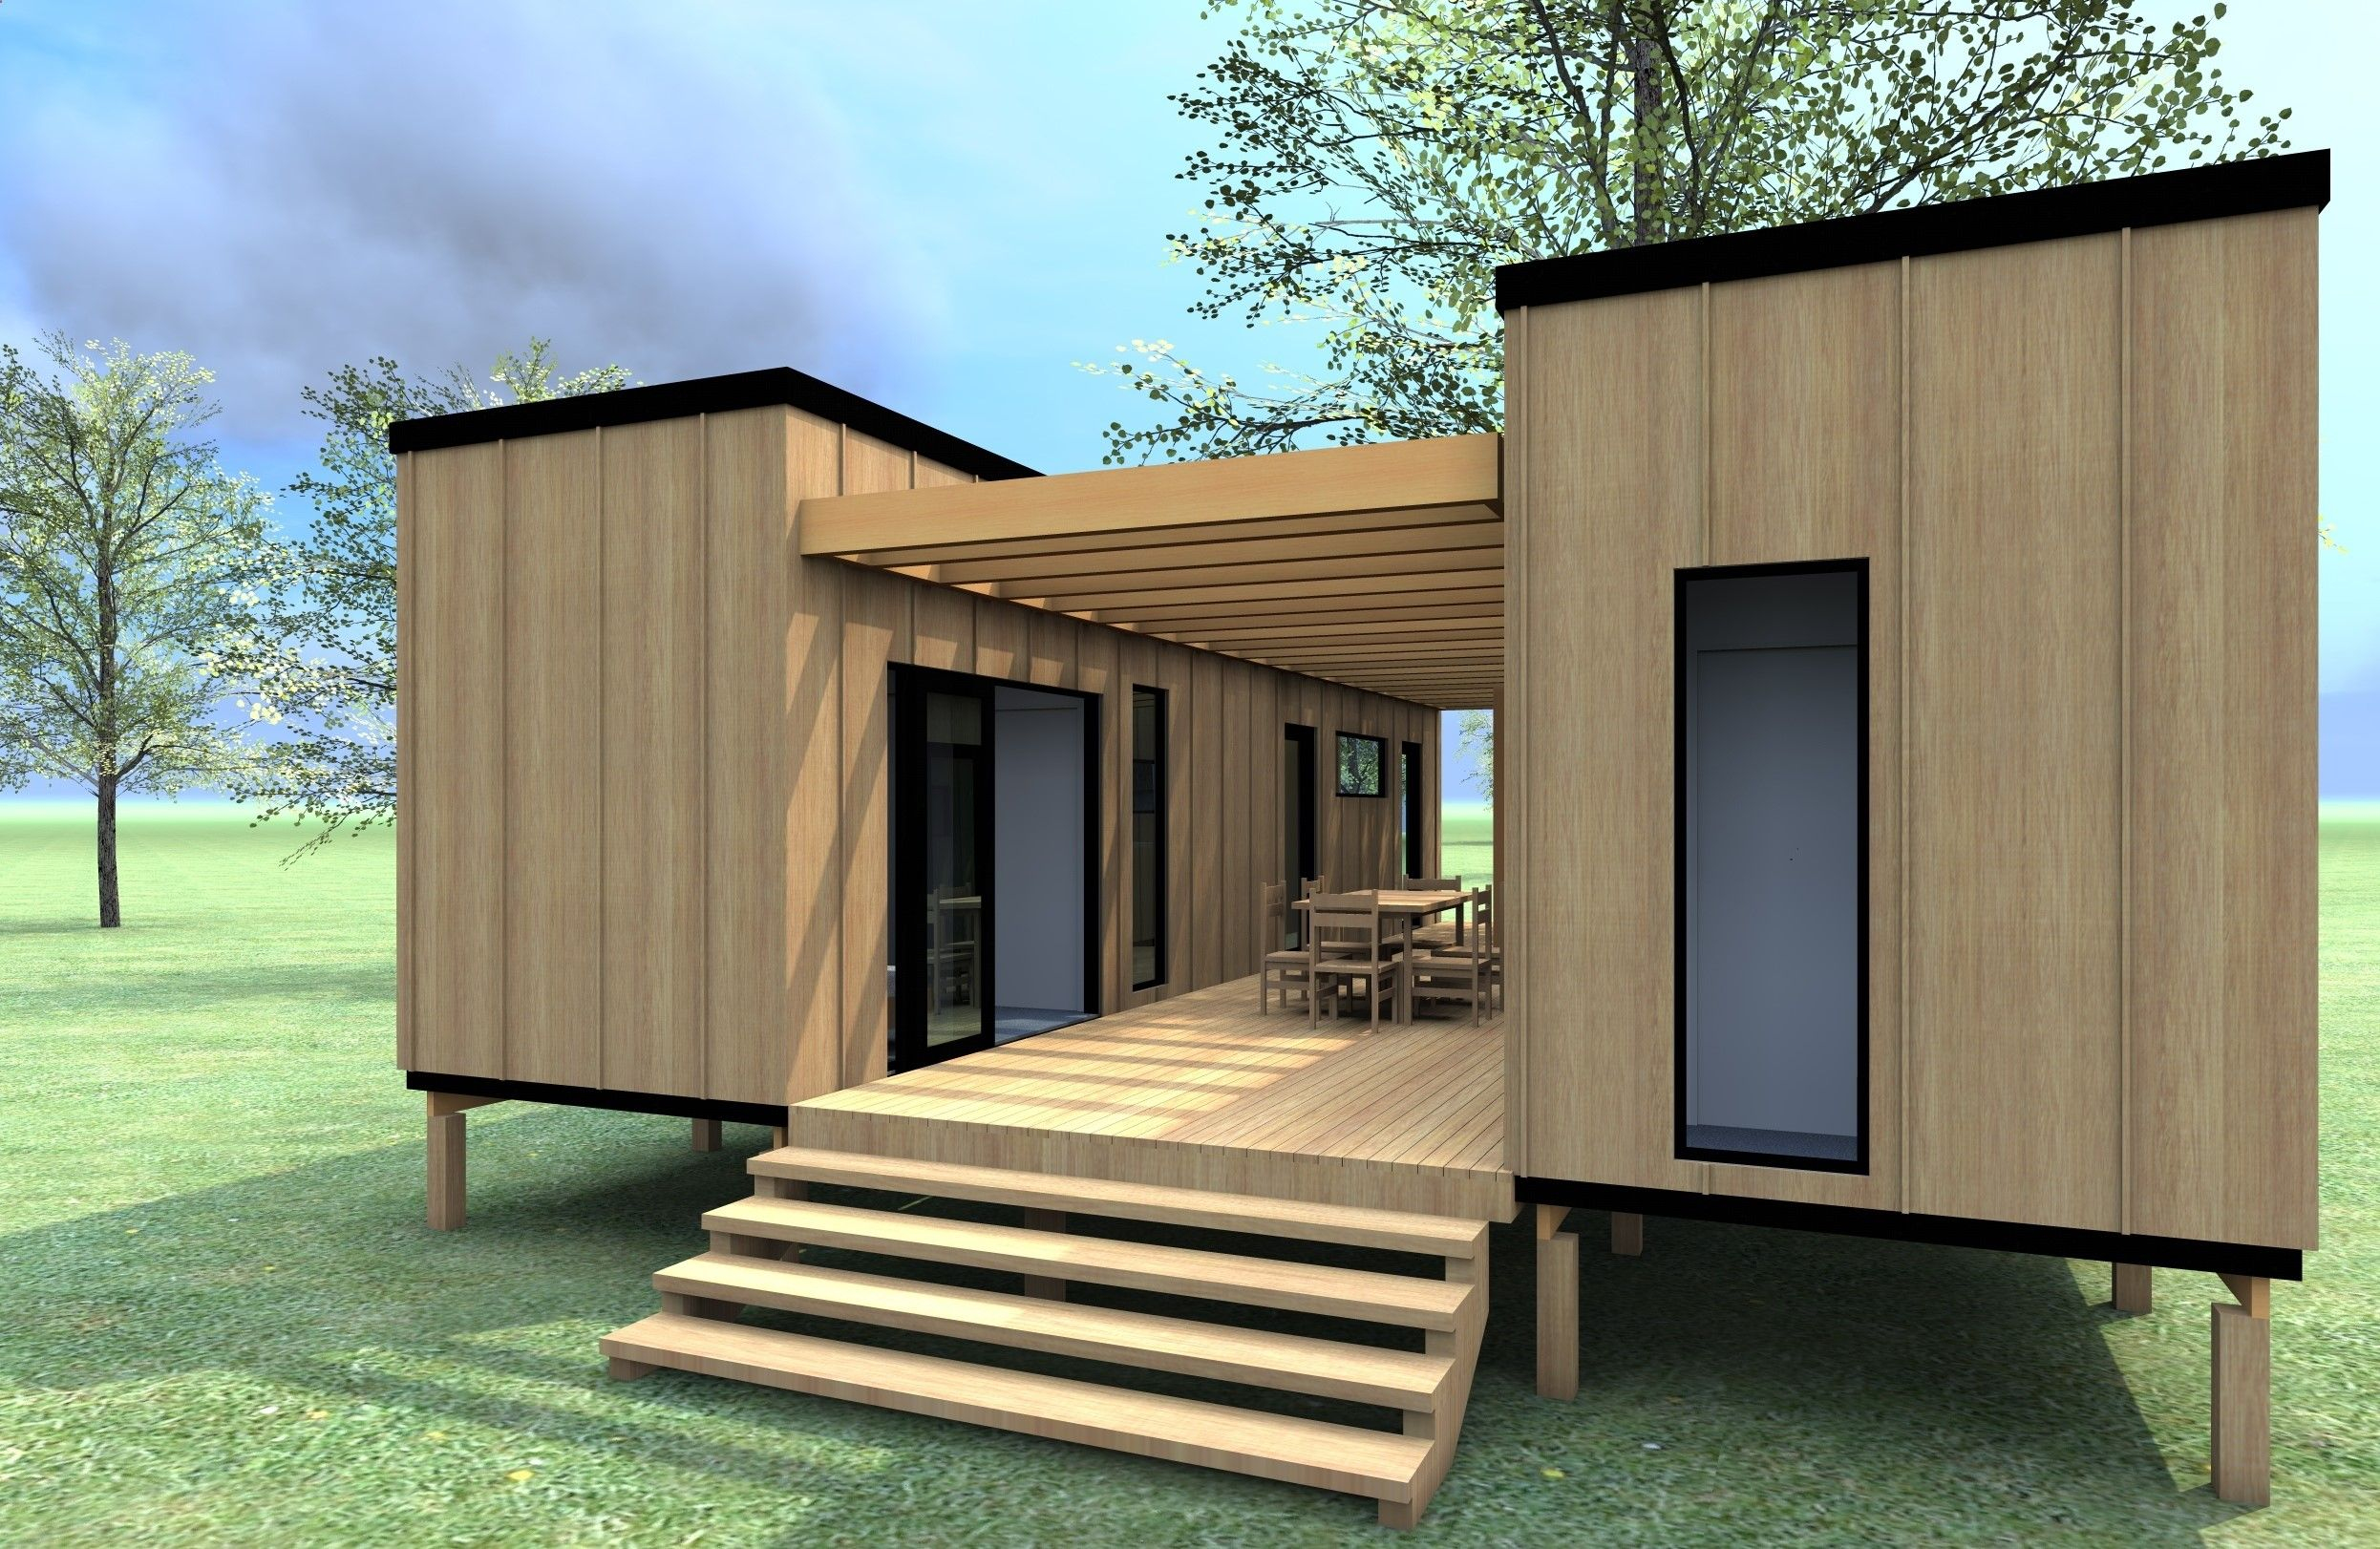 Best Kitchen Gallery: Container House Shipping Container Barn Plans Bing Images Who of Shipping Container Barn on rachelxblog.com